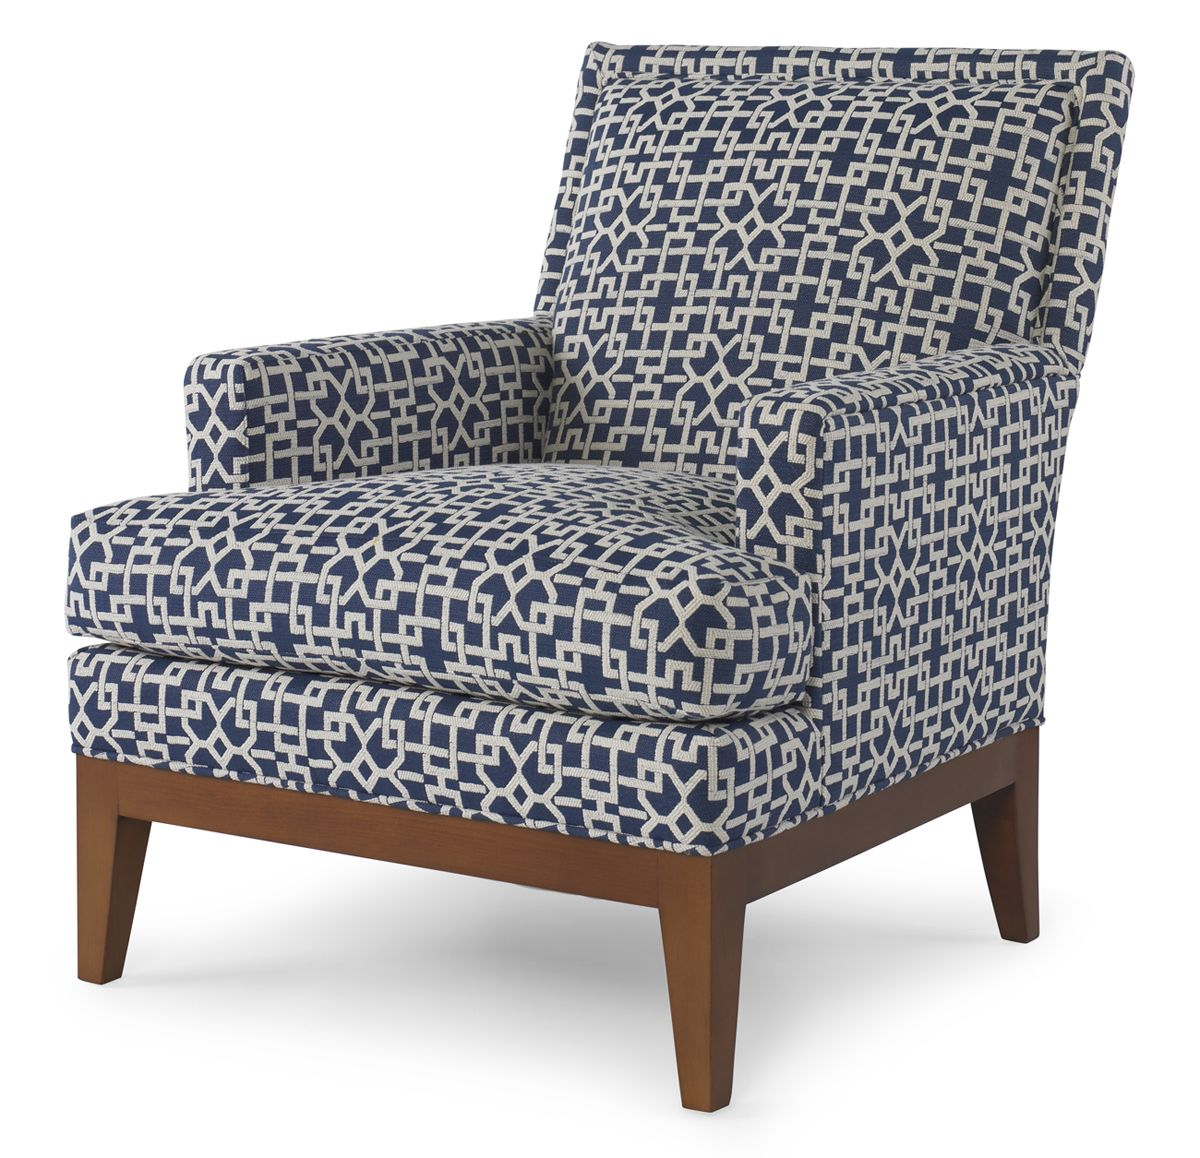 Pearson 328 Chair In Navy And Ivory Fretwork Furniture